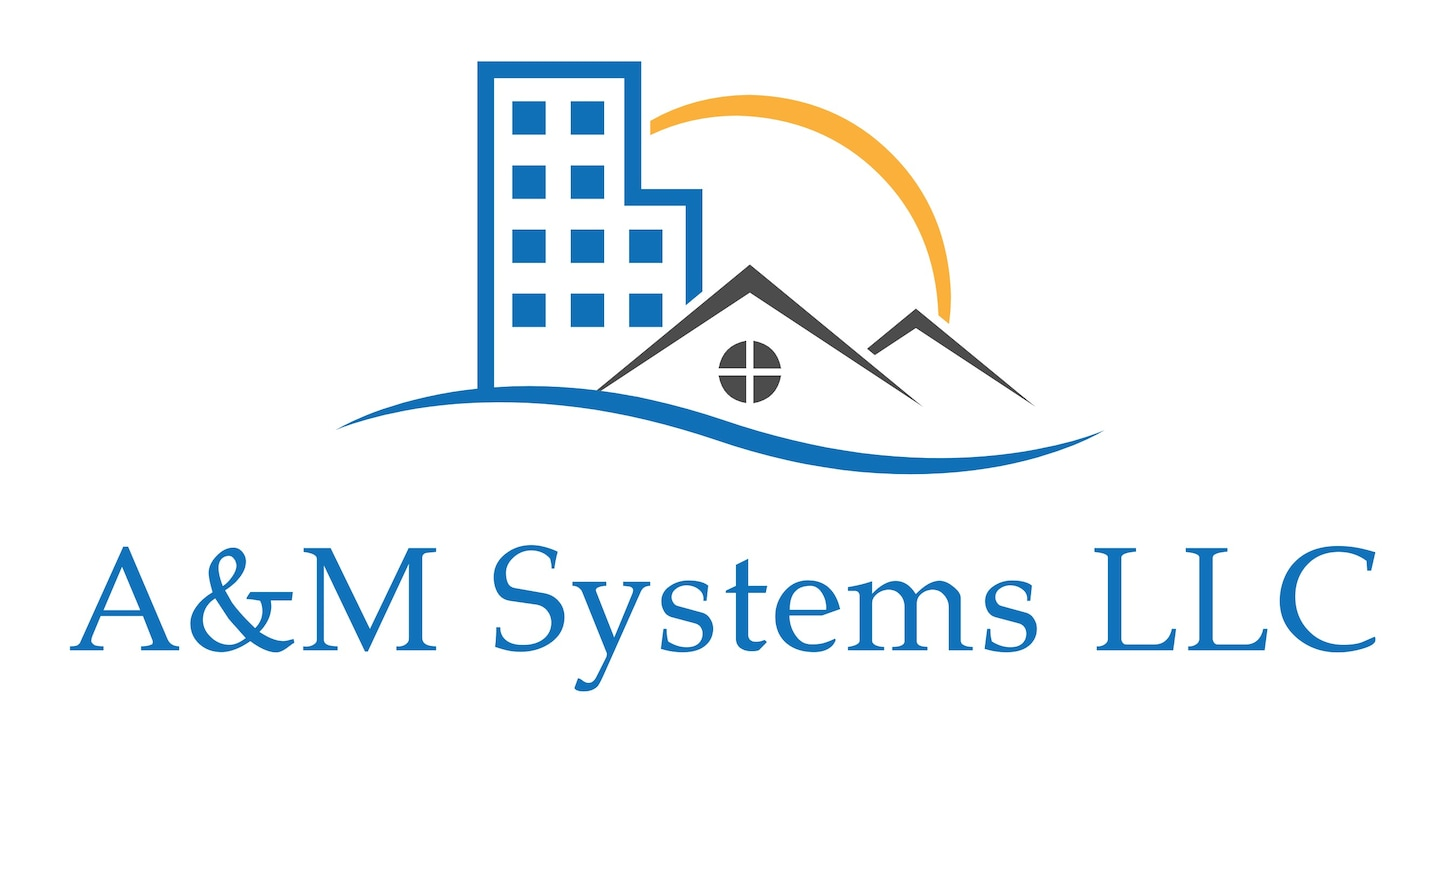 A&M Systems LLC